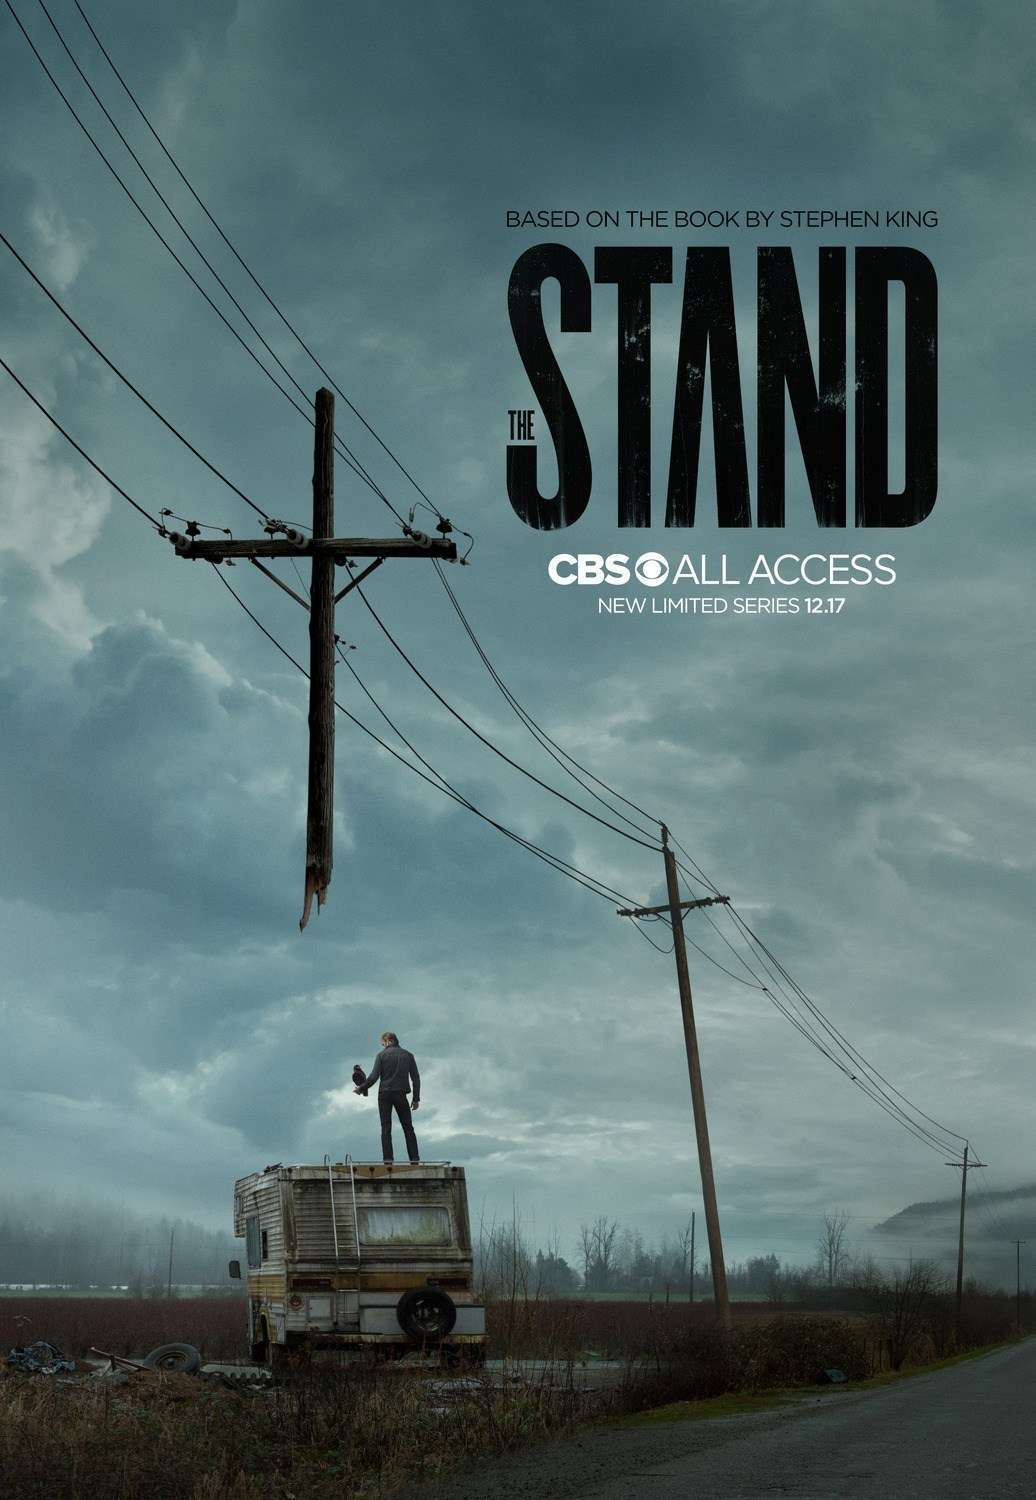 the stand episode 6 release date story all the juicy details 60037ed404447 The Stand Episode 6: Release date, Story, All The Juicy Details!